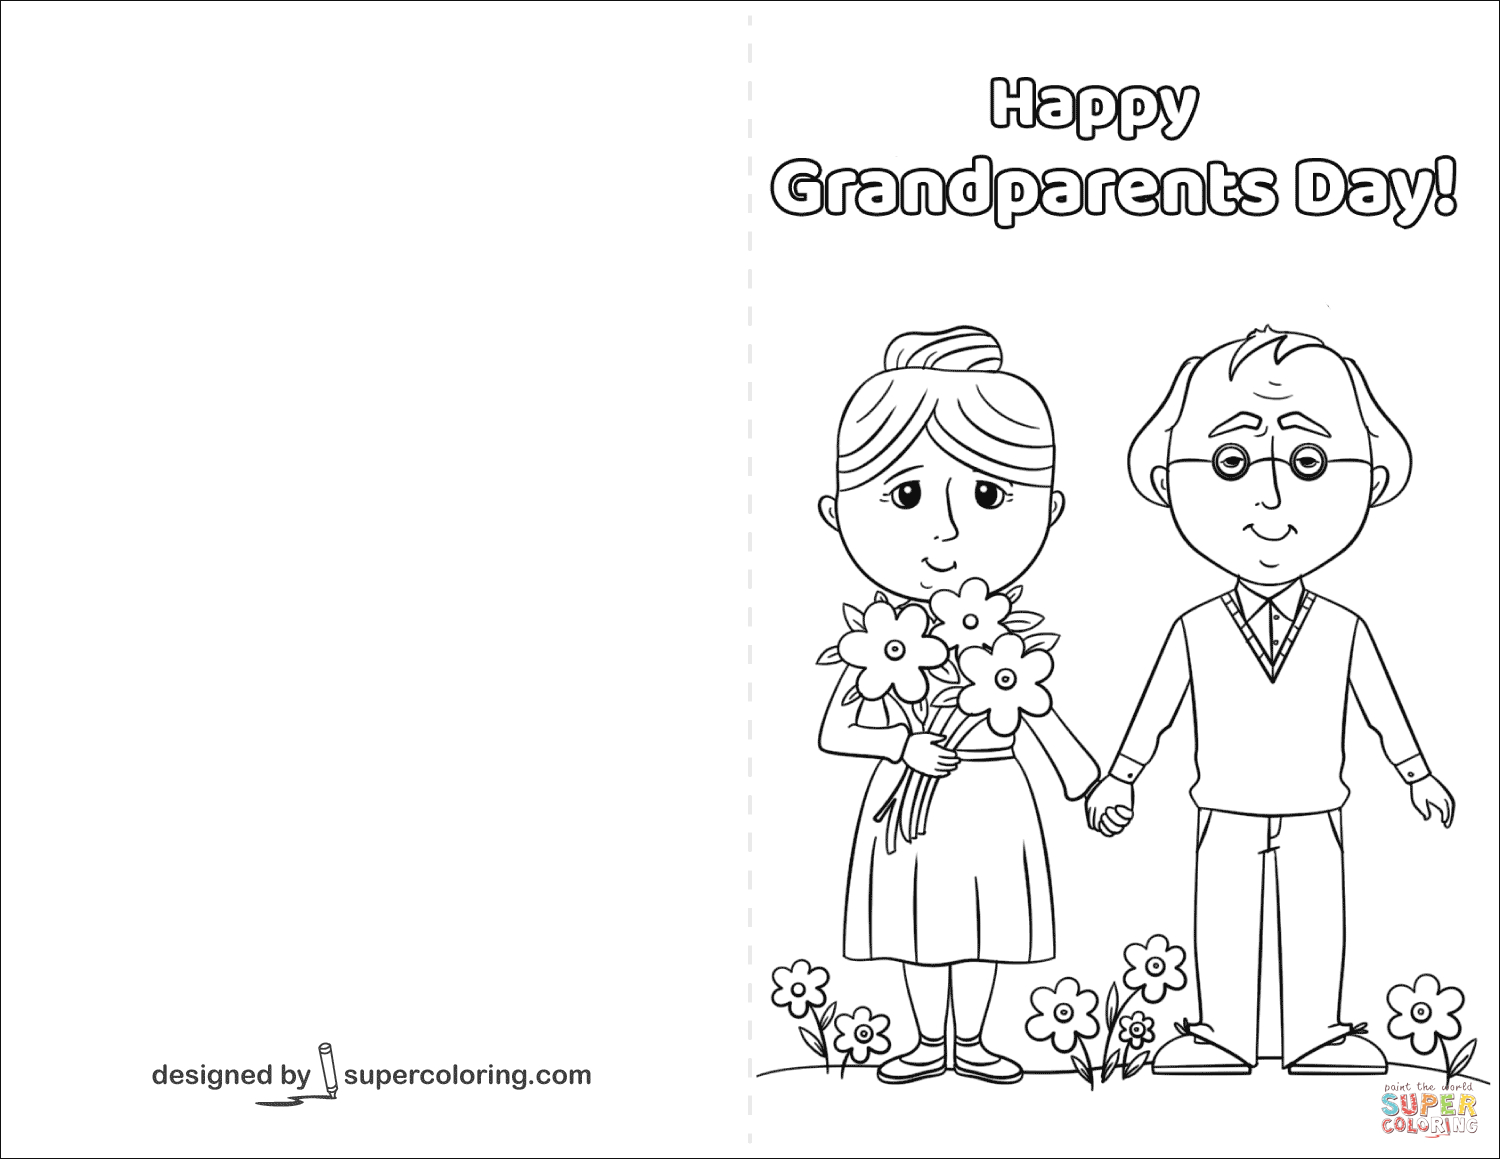 Happy Grandparents Day Card Coloring Page   Free Printable Coloring - Grandparents Day Cards Printable Free